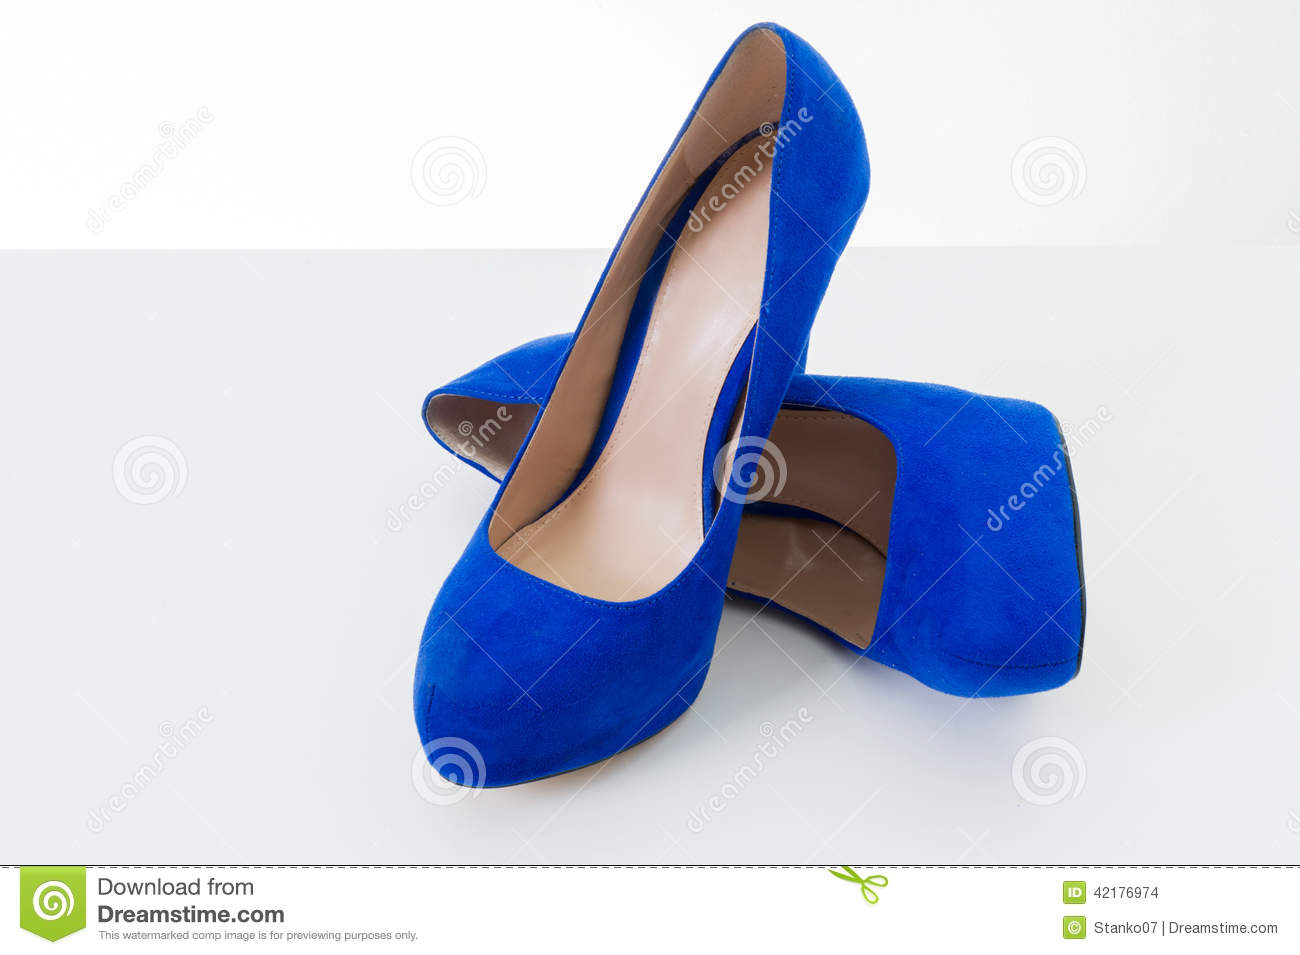 blue high heel shoes royalty free stock image